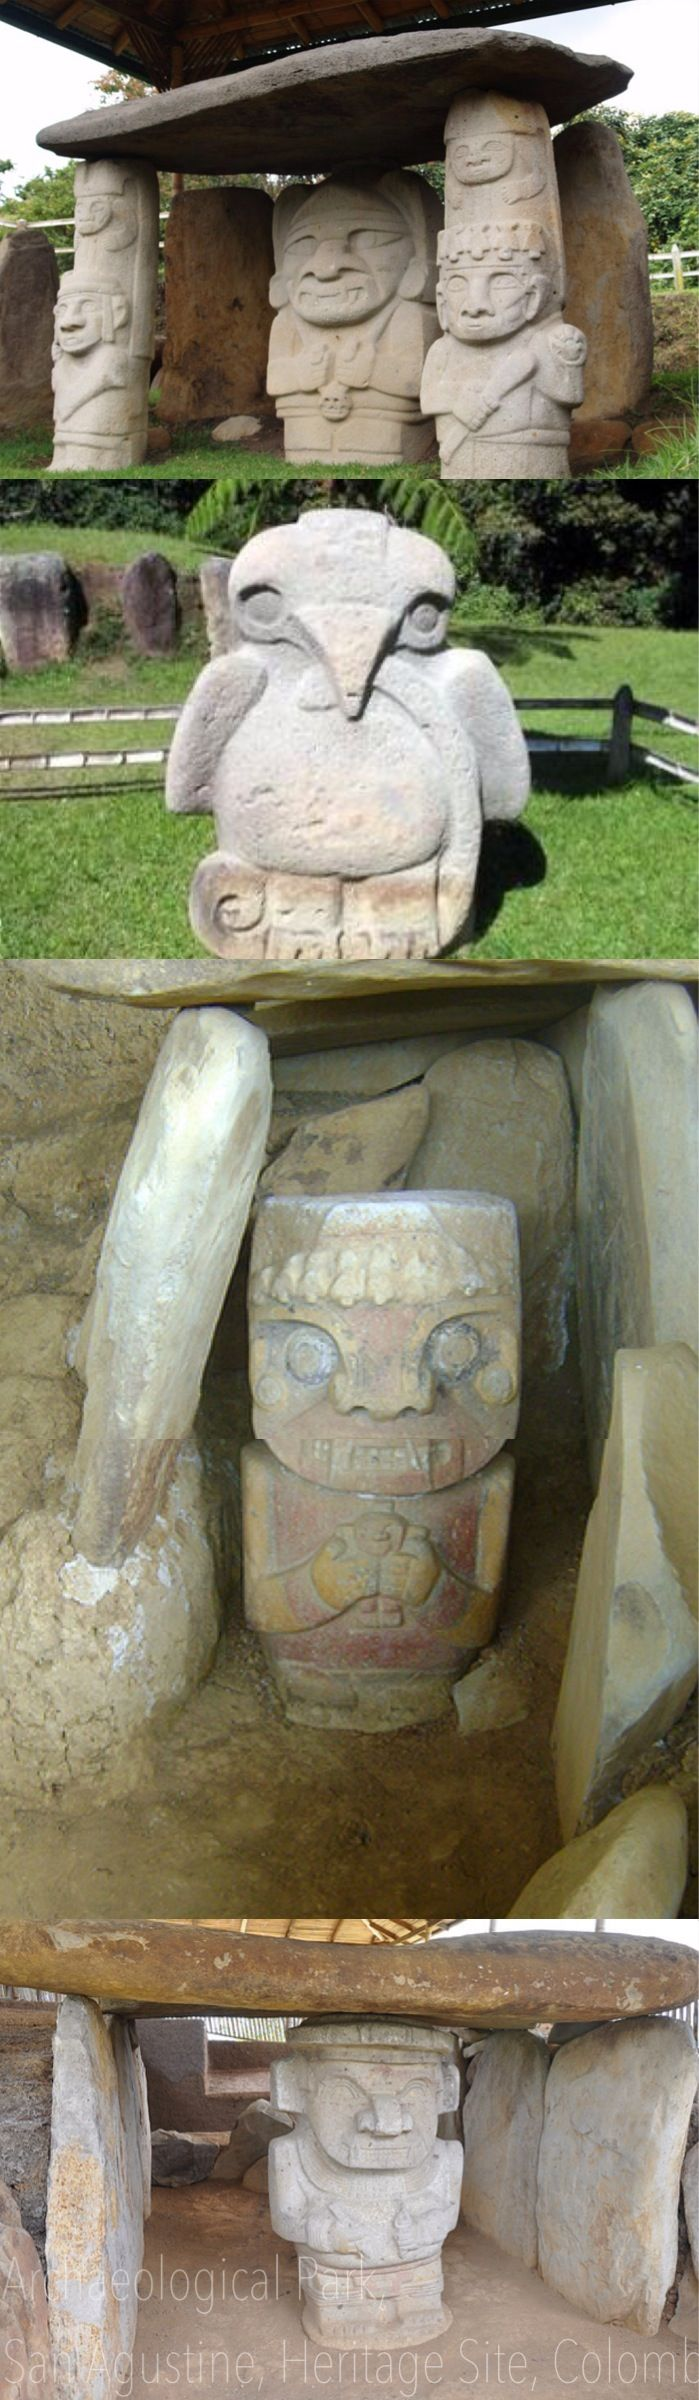 South America ,Archaeological Park, San Agustine, Unesco World Heritage Site, Colombia, South America